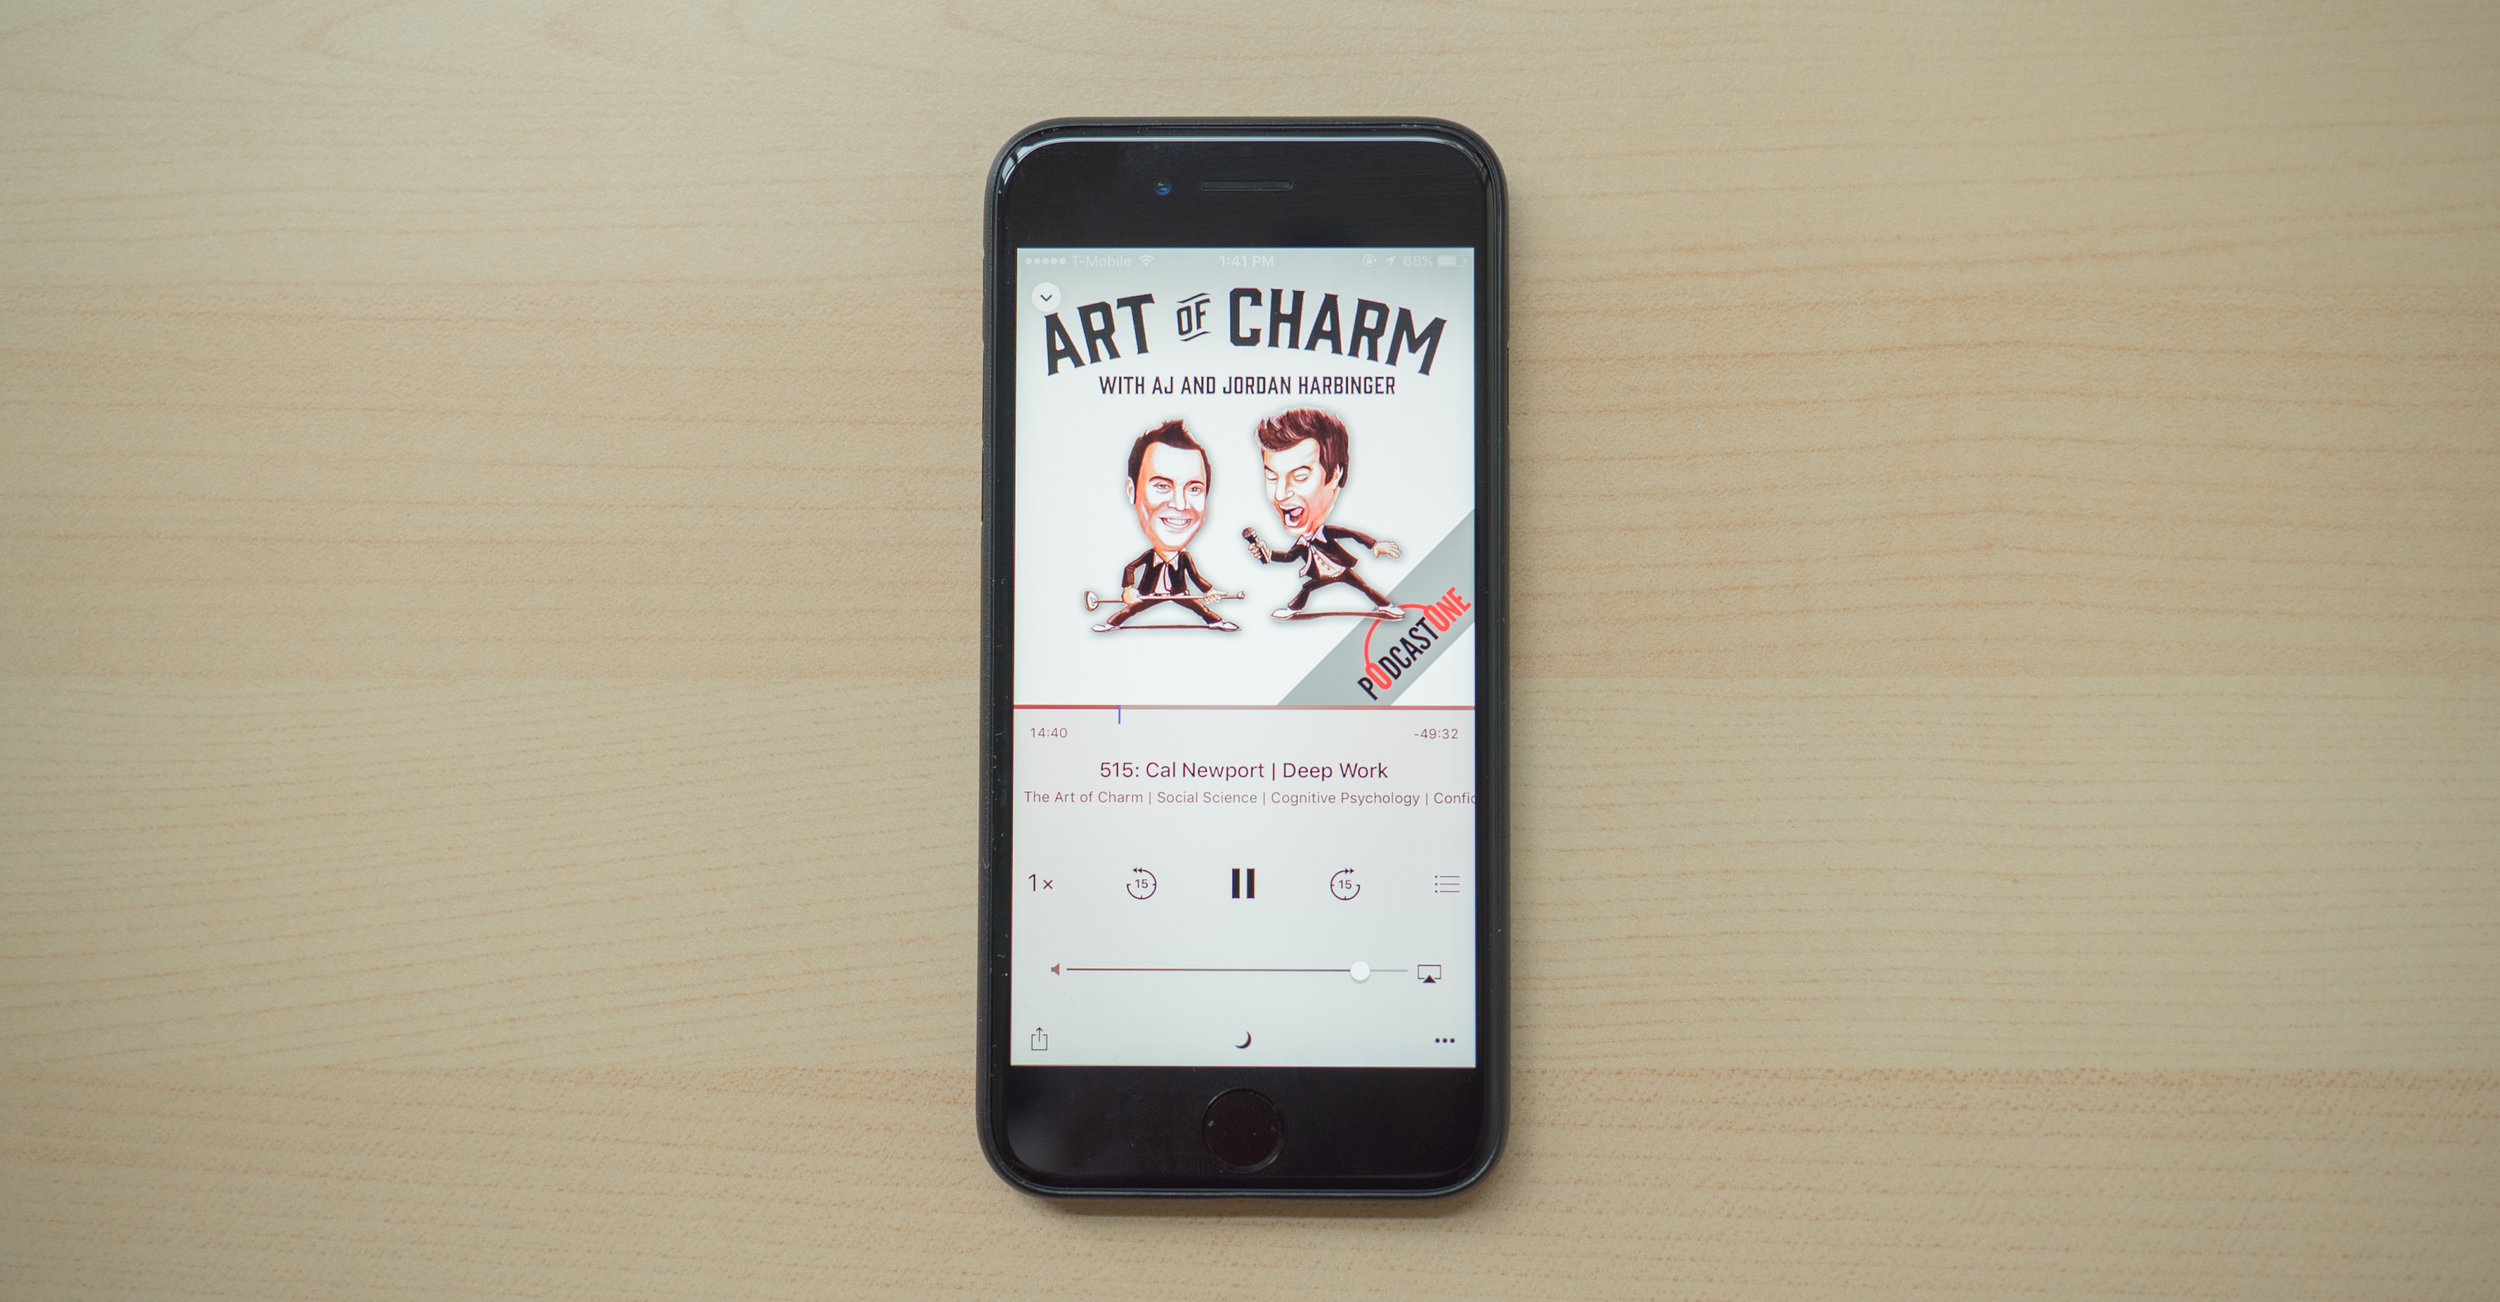 Enter Art of Charm podcasts